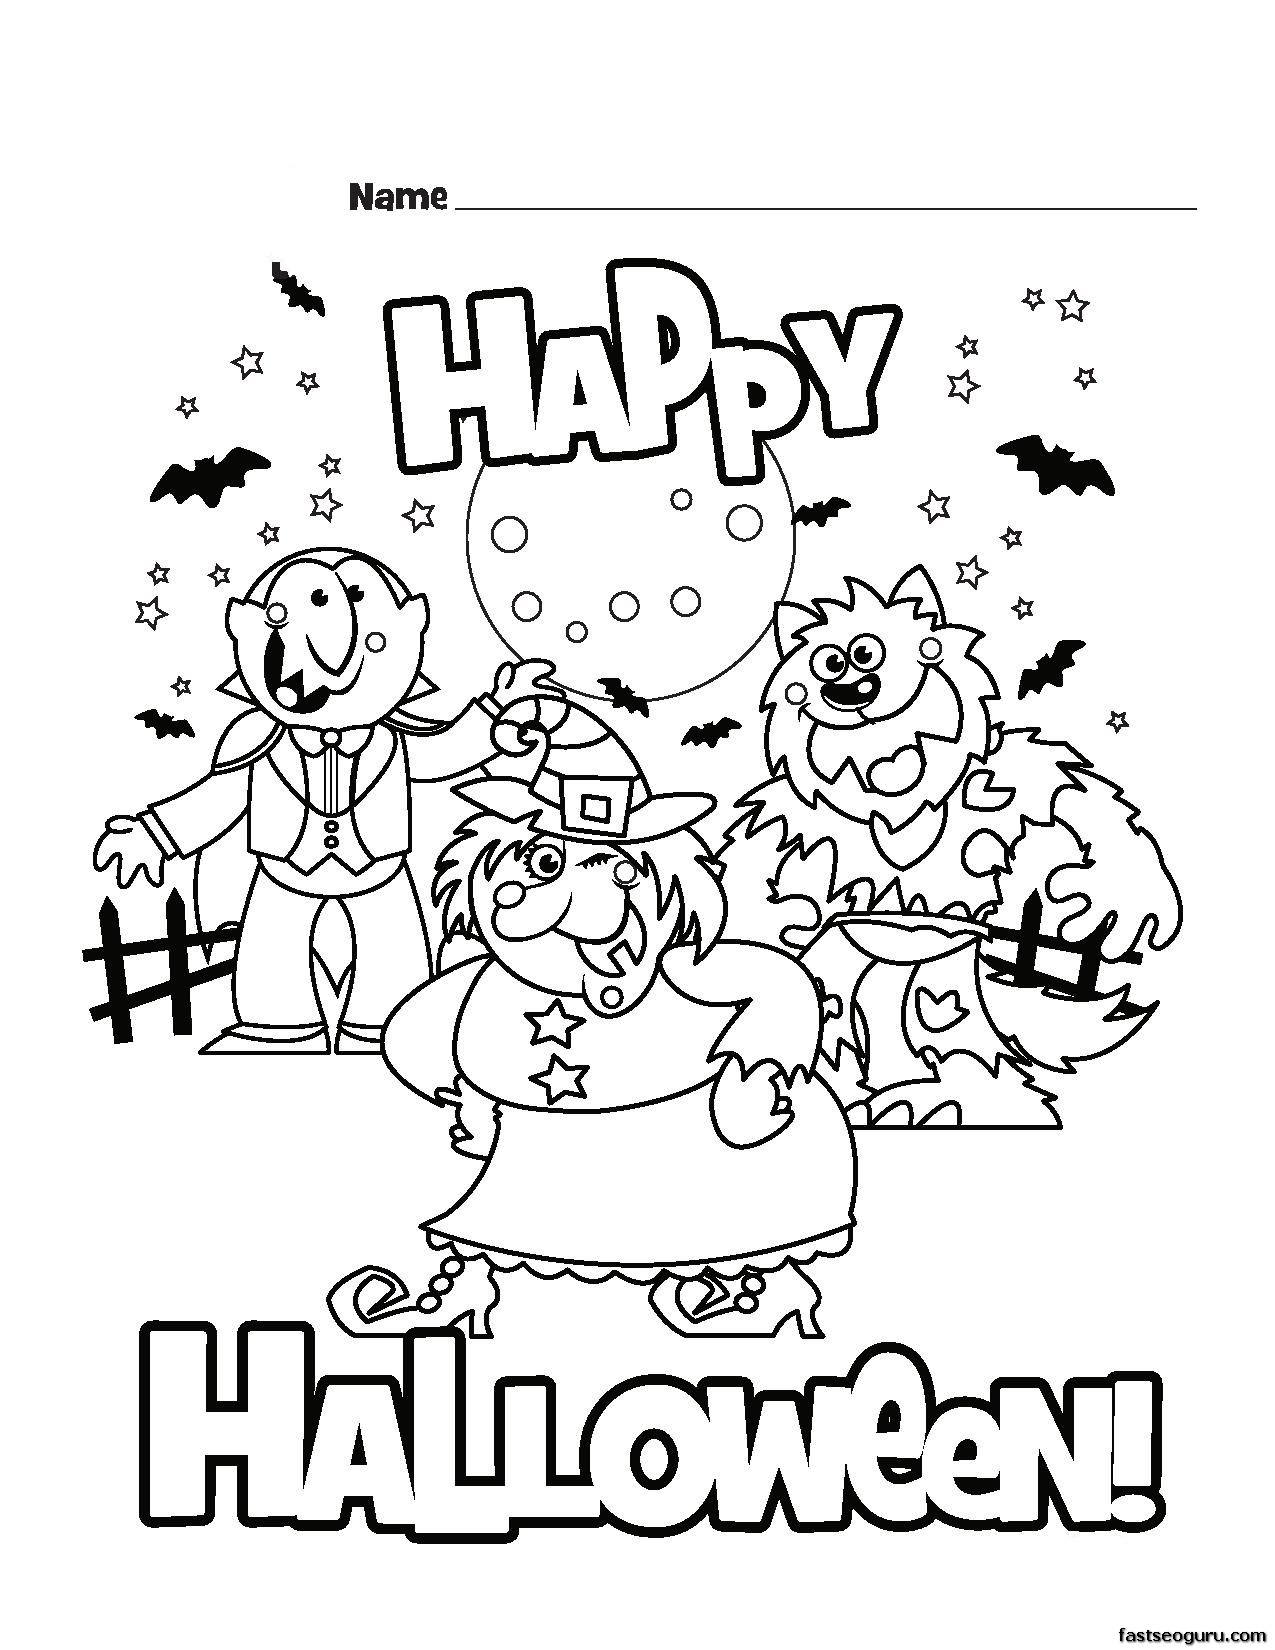 Coloring Pages : Free Printable Halloween Coloring Pages Best Of - Free Printable Halloween Coloring Pages